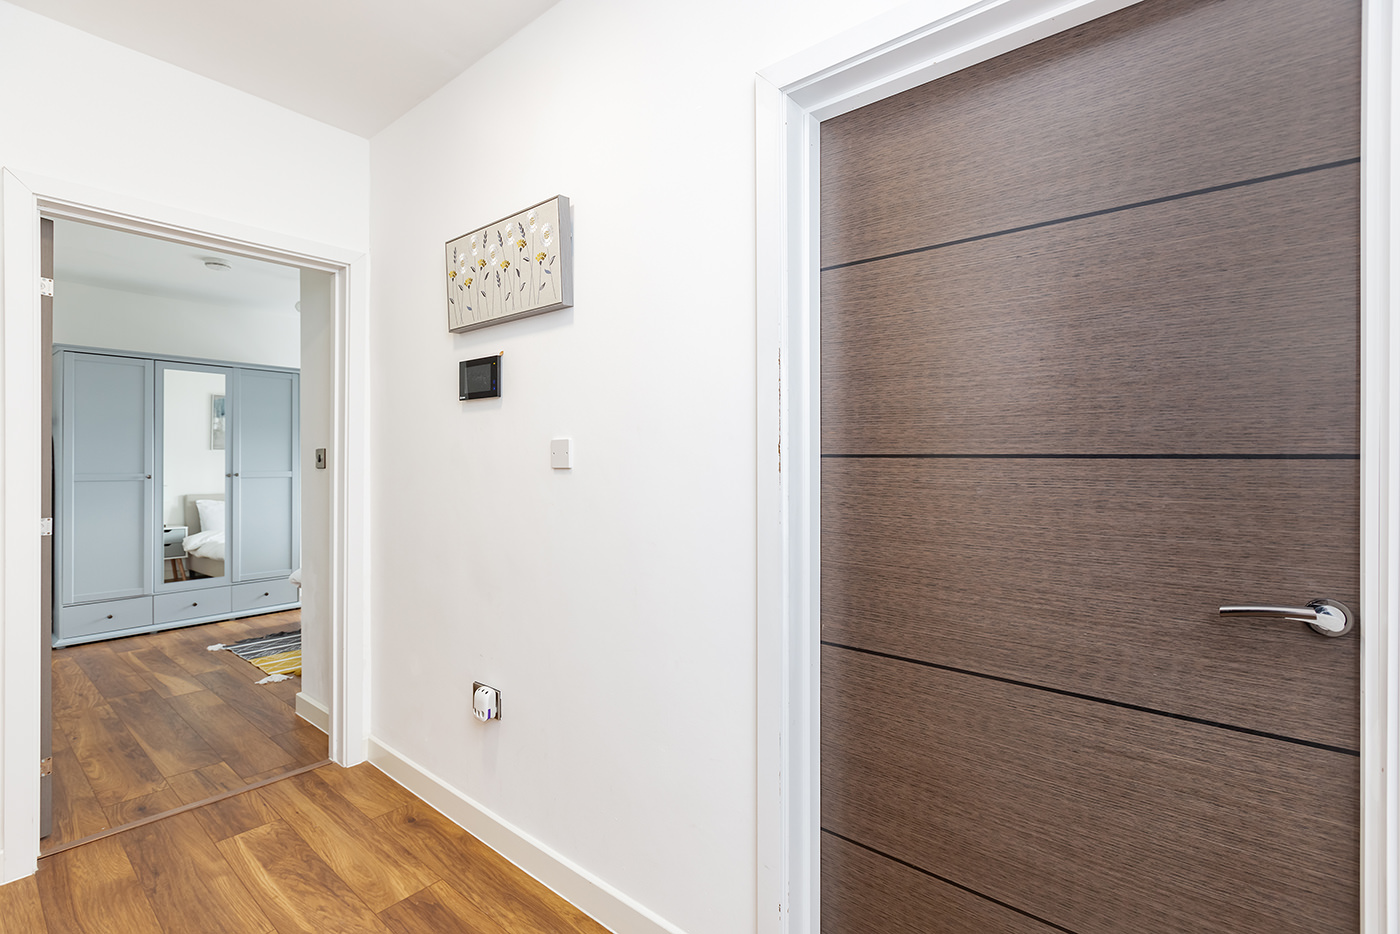 Hallway at Manhattan Heights Apartments, Centre, Maidstone - Citybase Apartments